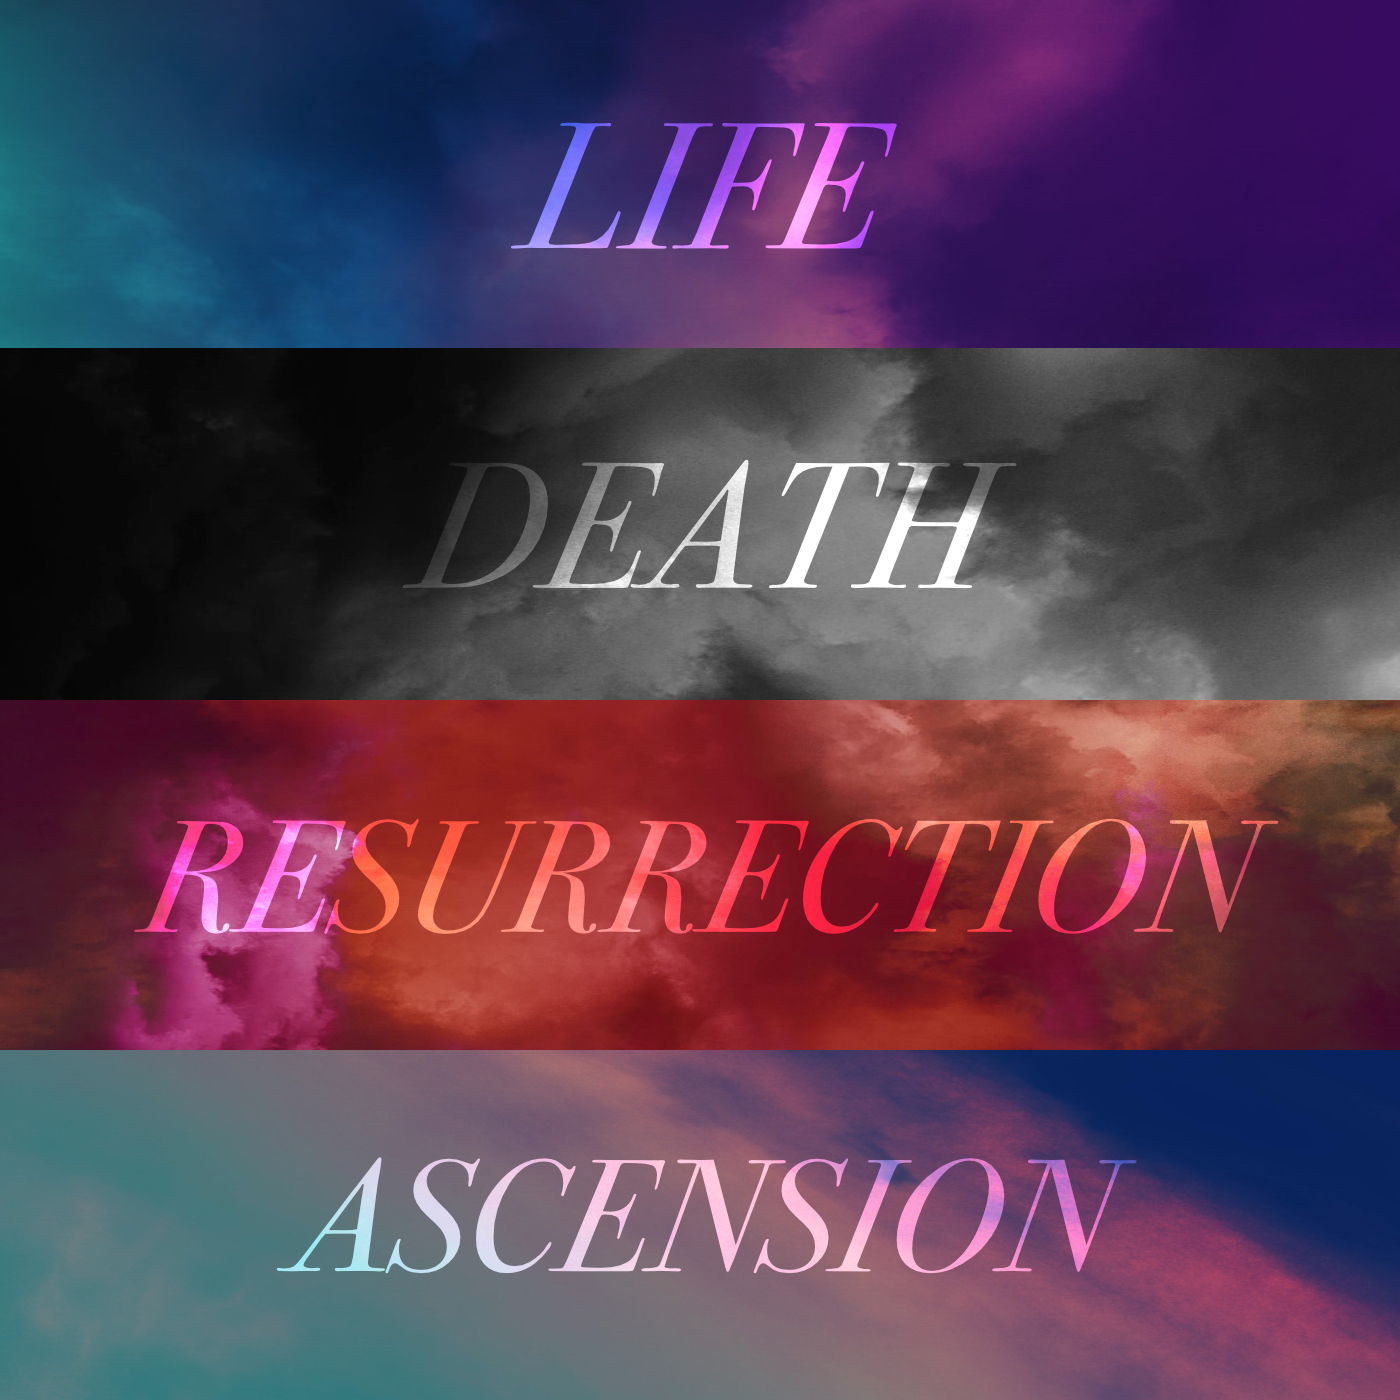 Life. Death. Resurrection. Ascension.